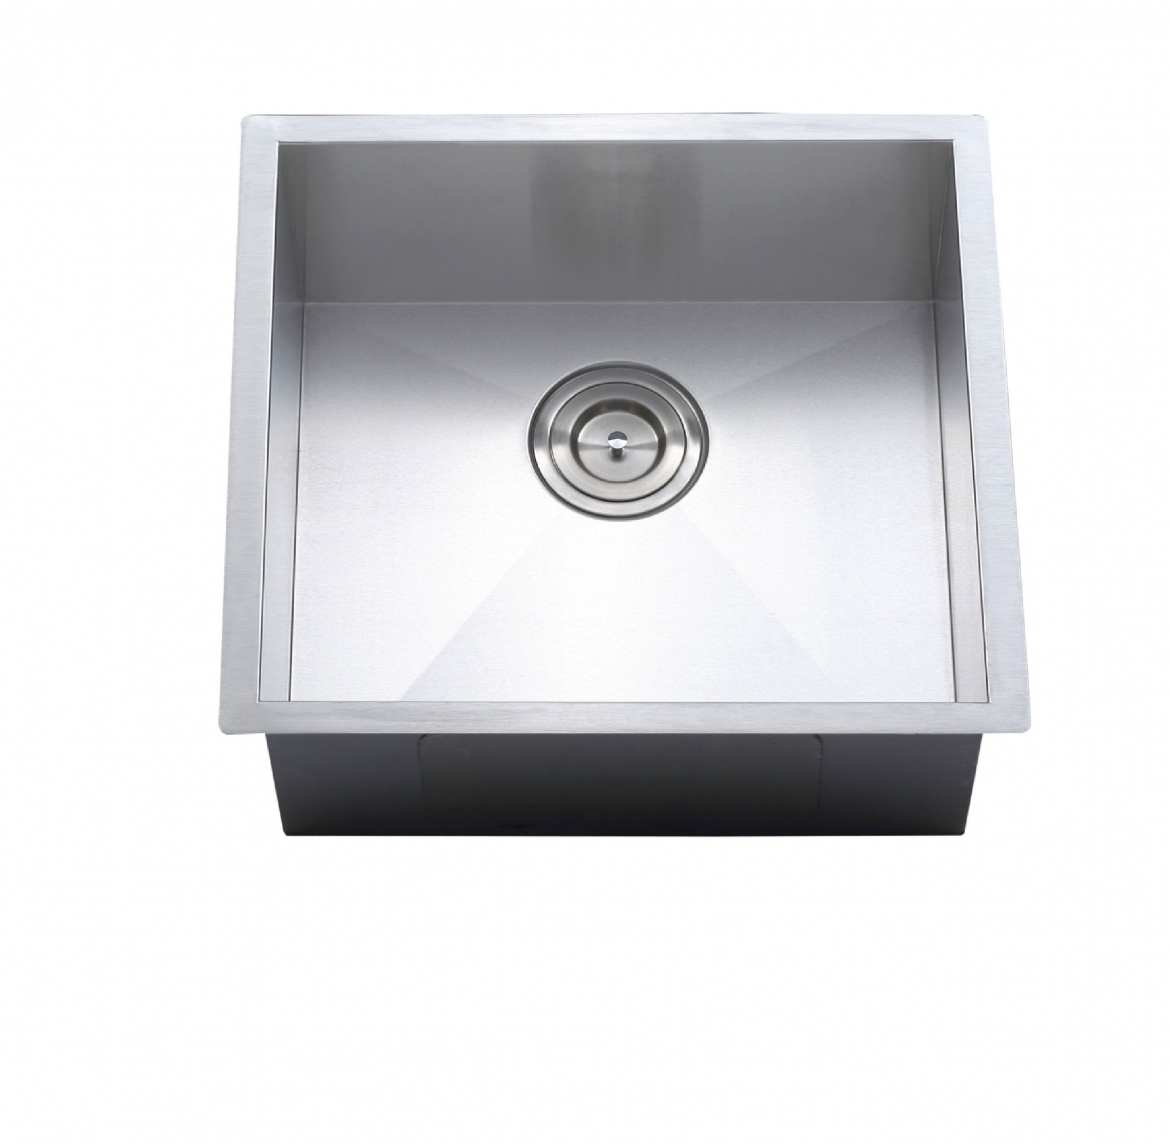 Square undermount Kitchen sink [540 x 390 x 210]